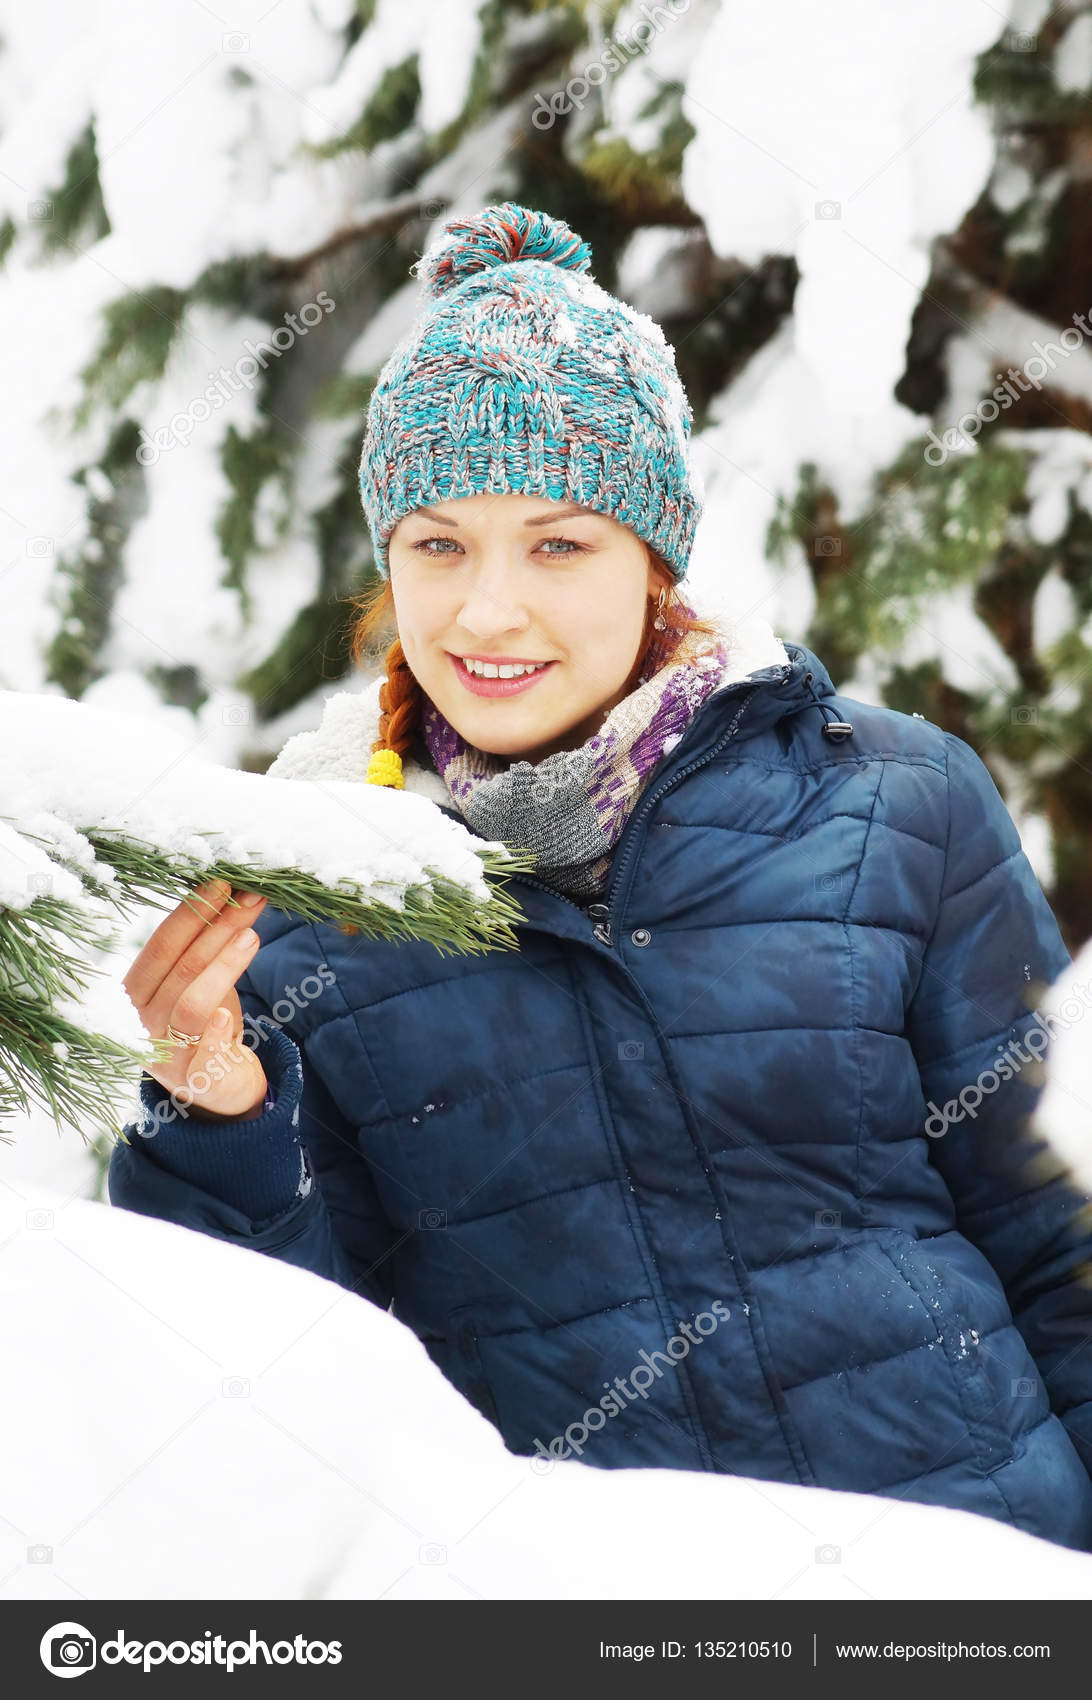 Joyous beautiful girl wearing blue jacket stands next to snowy